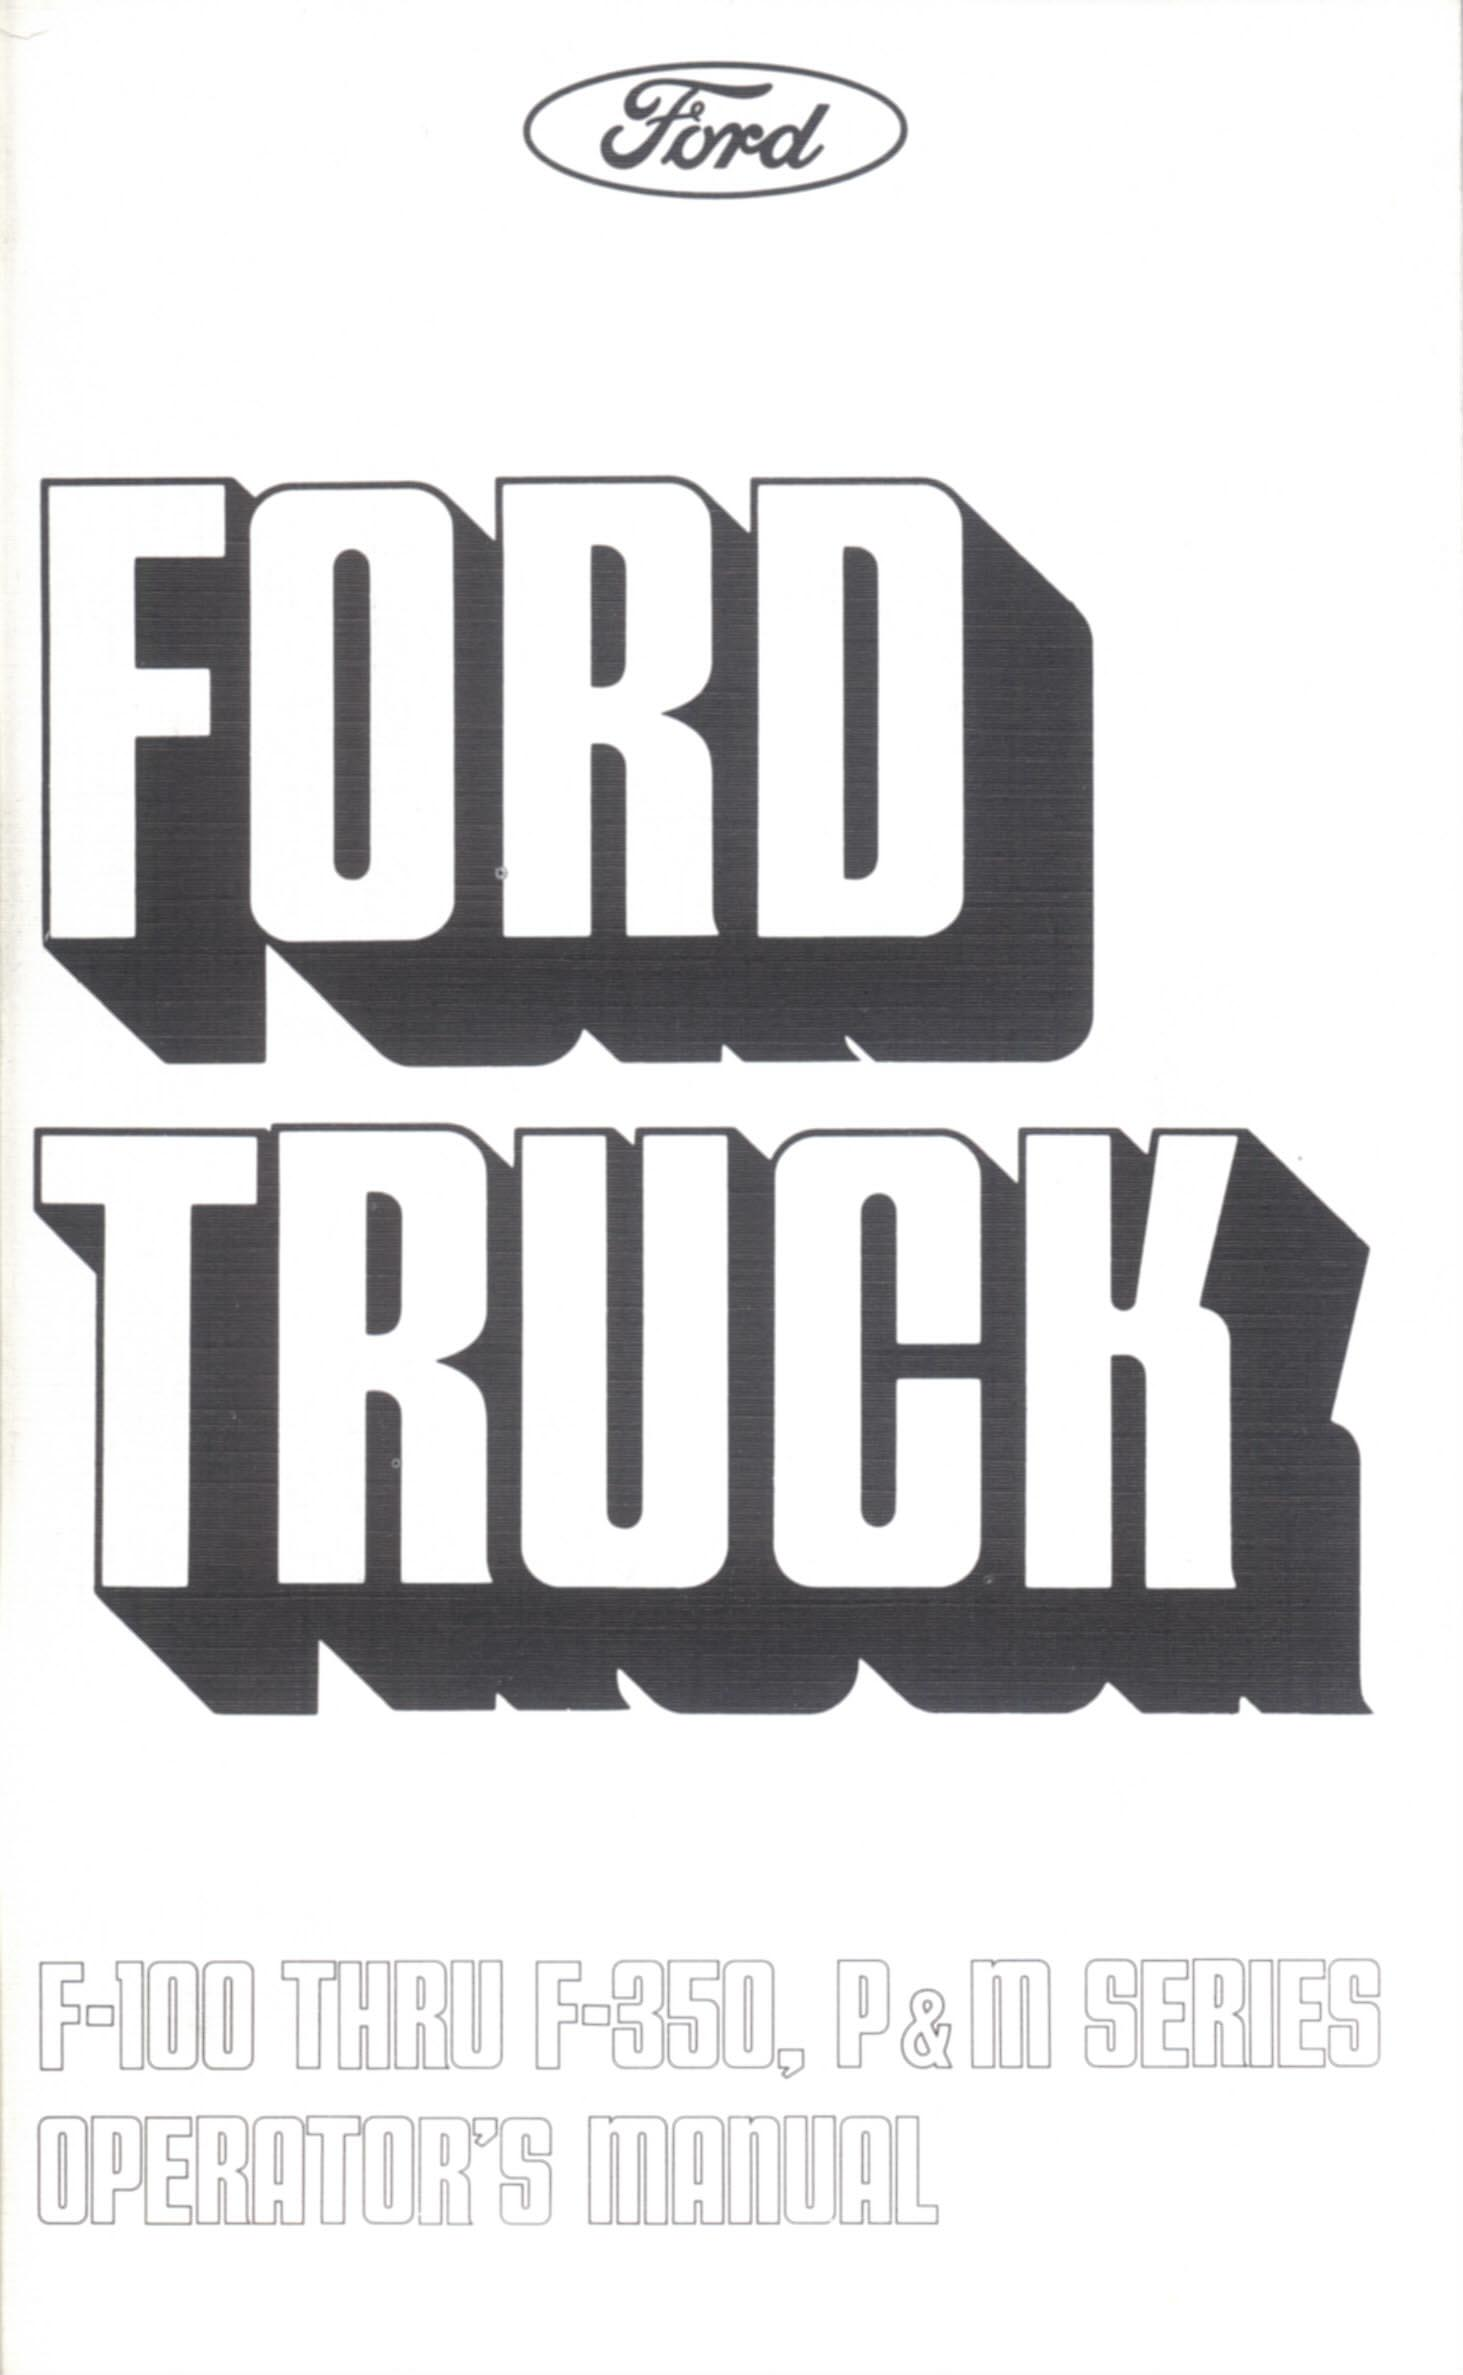 1974 Ford Truck Owners Manual-Broncograveyard.com